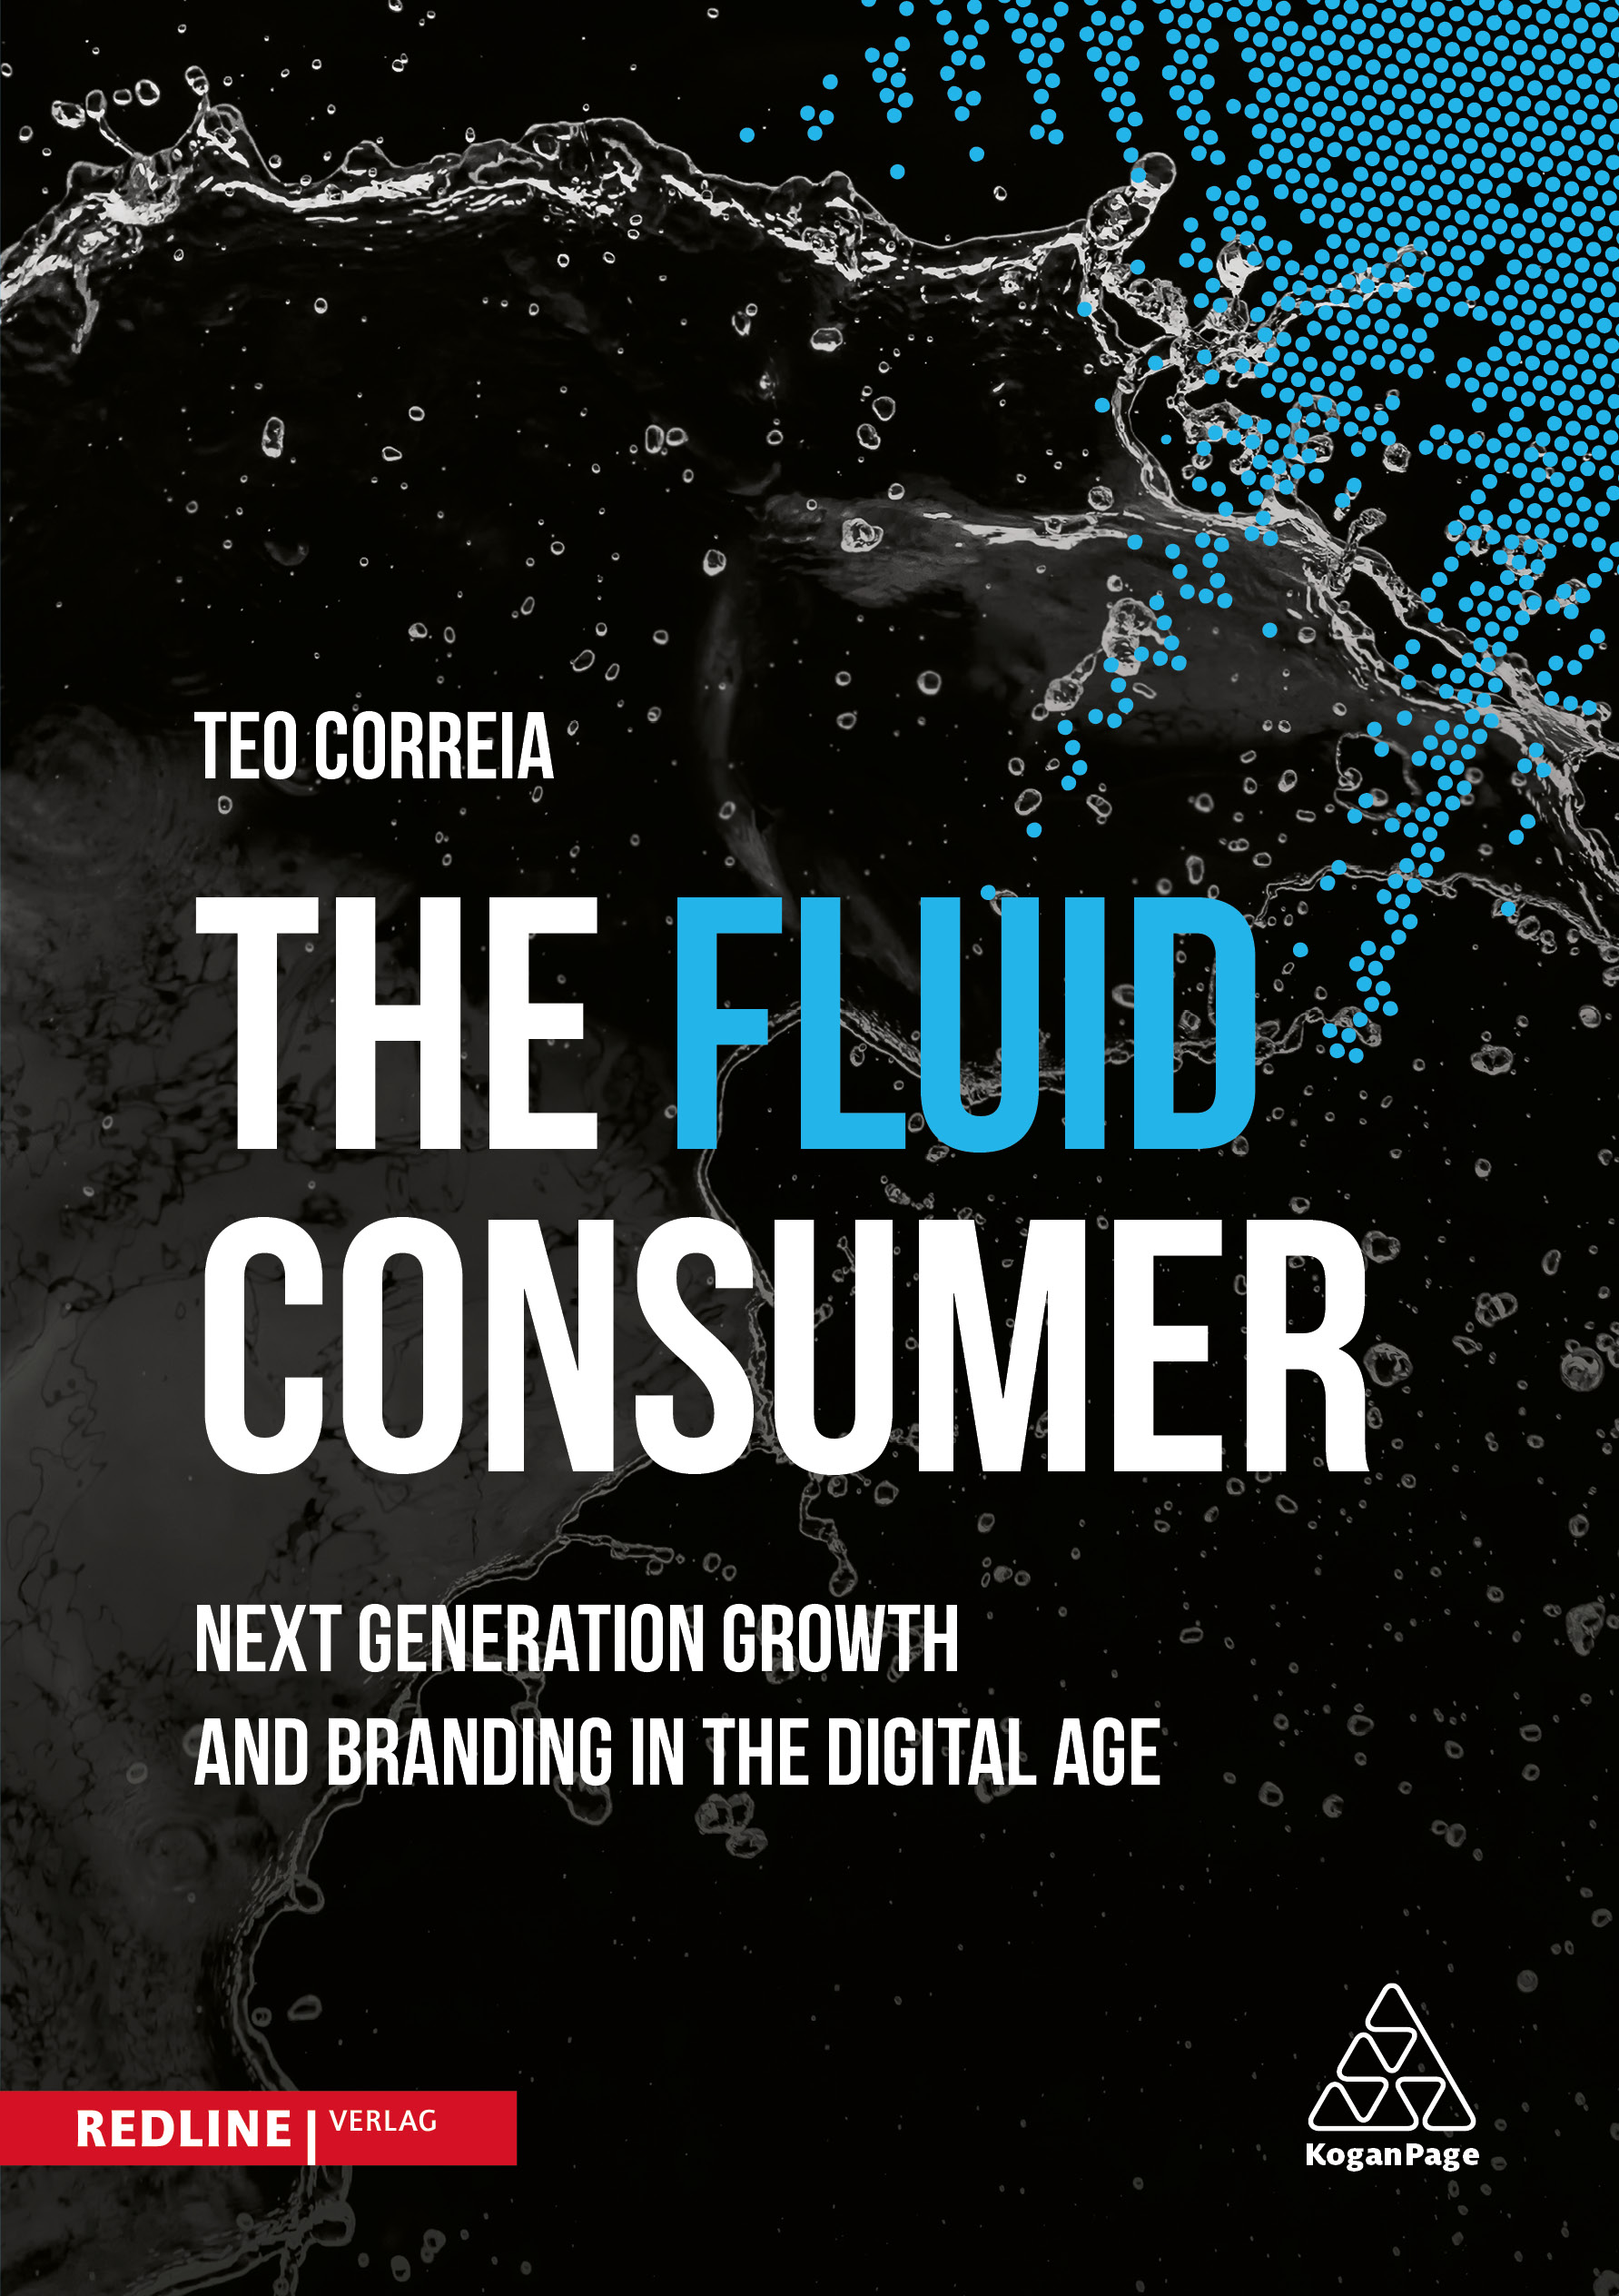 Accenture book The Fluid Consumer, by Teo Correia: Consumer packaged goods companies must re-focus on consumer rather than goods